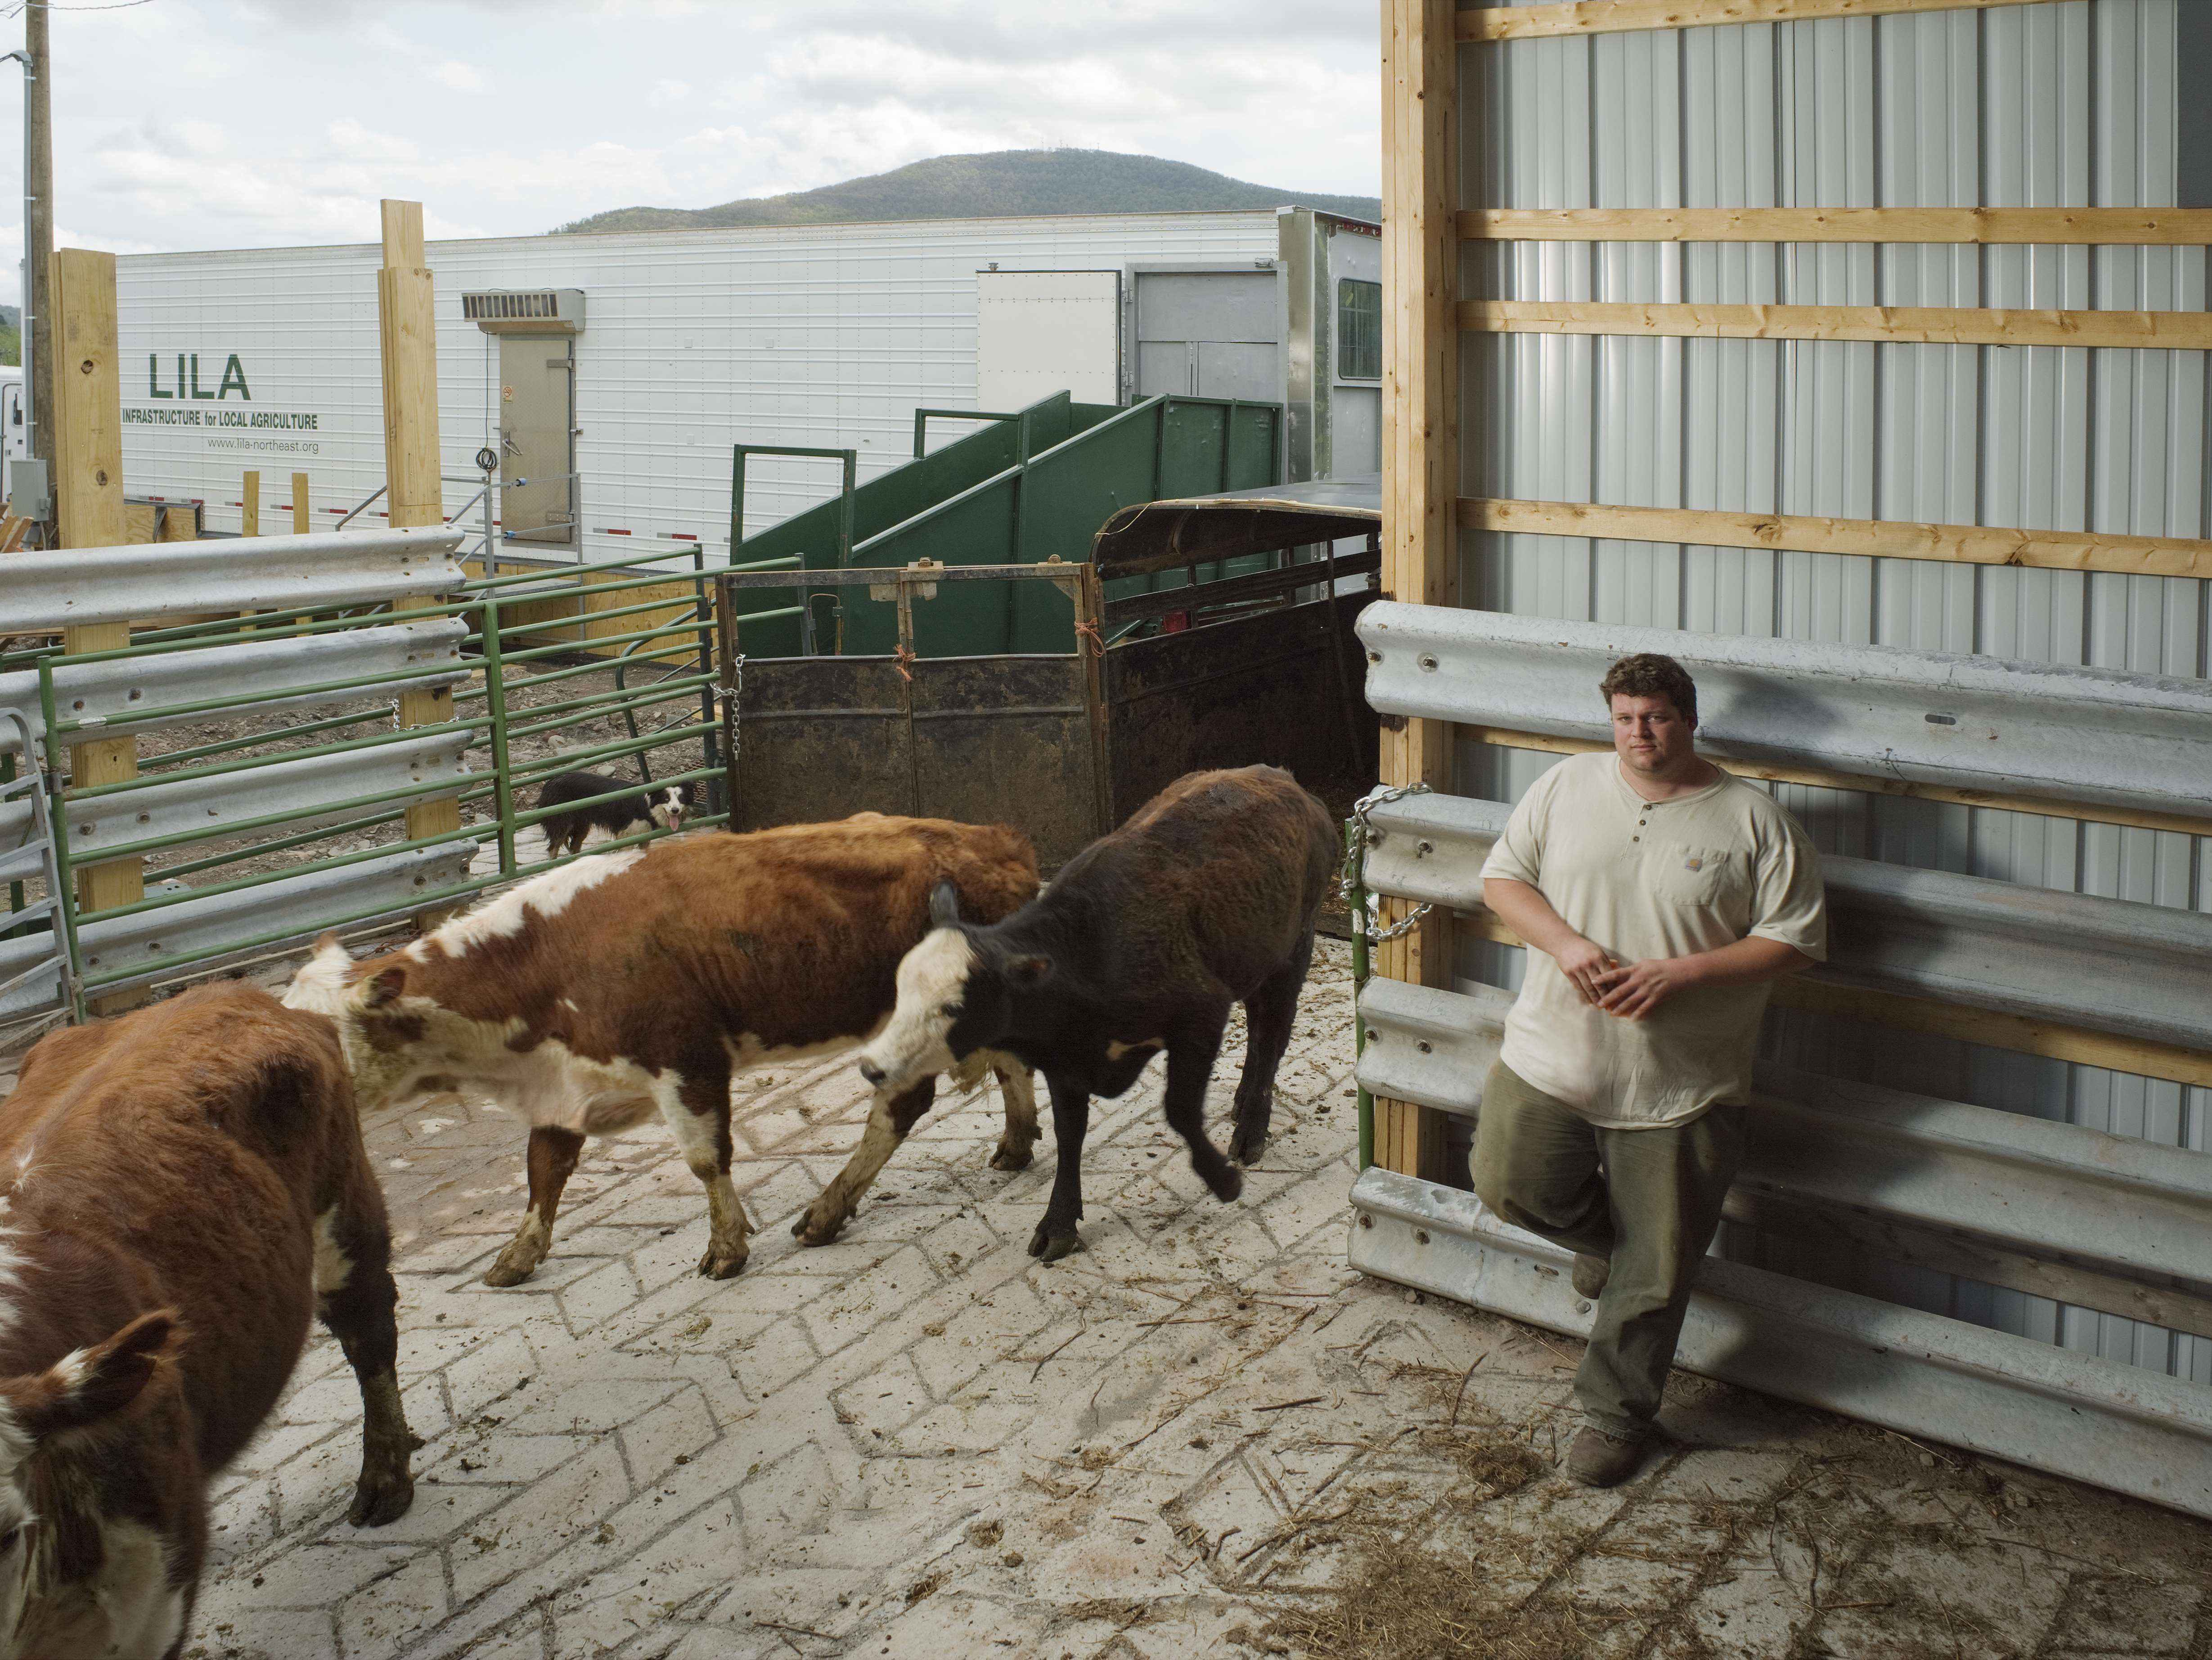 Operator Jim Eklund in Stamford, NY. In background is the mobile slaughterhouse overseen by Local Infrastructure for Local Agriculture (LILA) an affiliate of Glynwood. Photo by Glynwood.